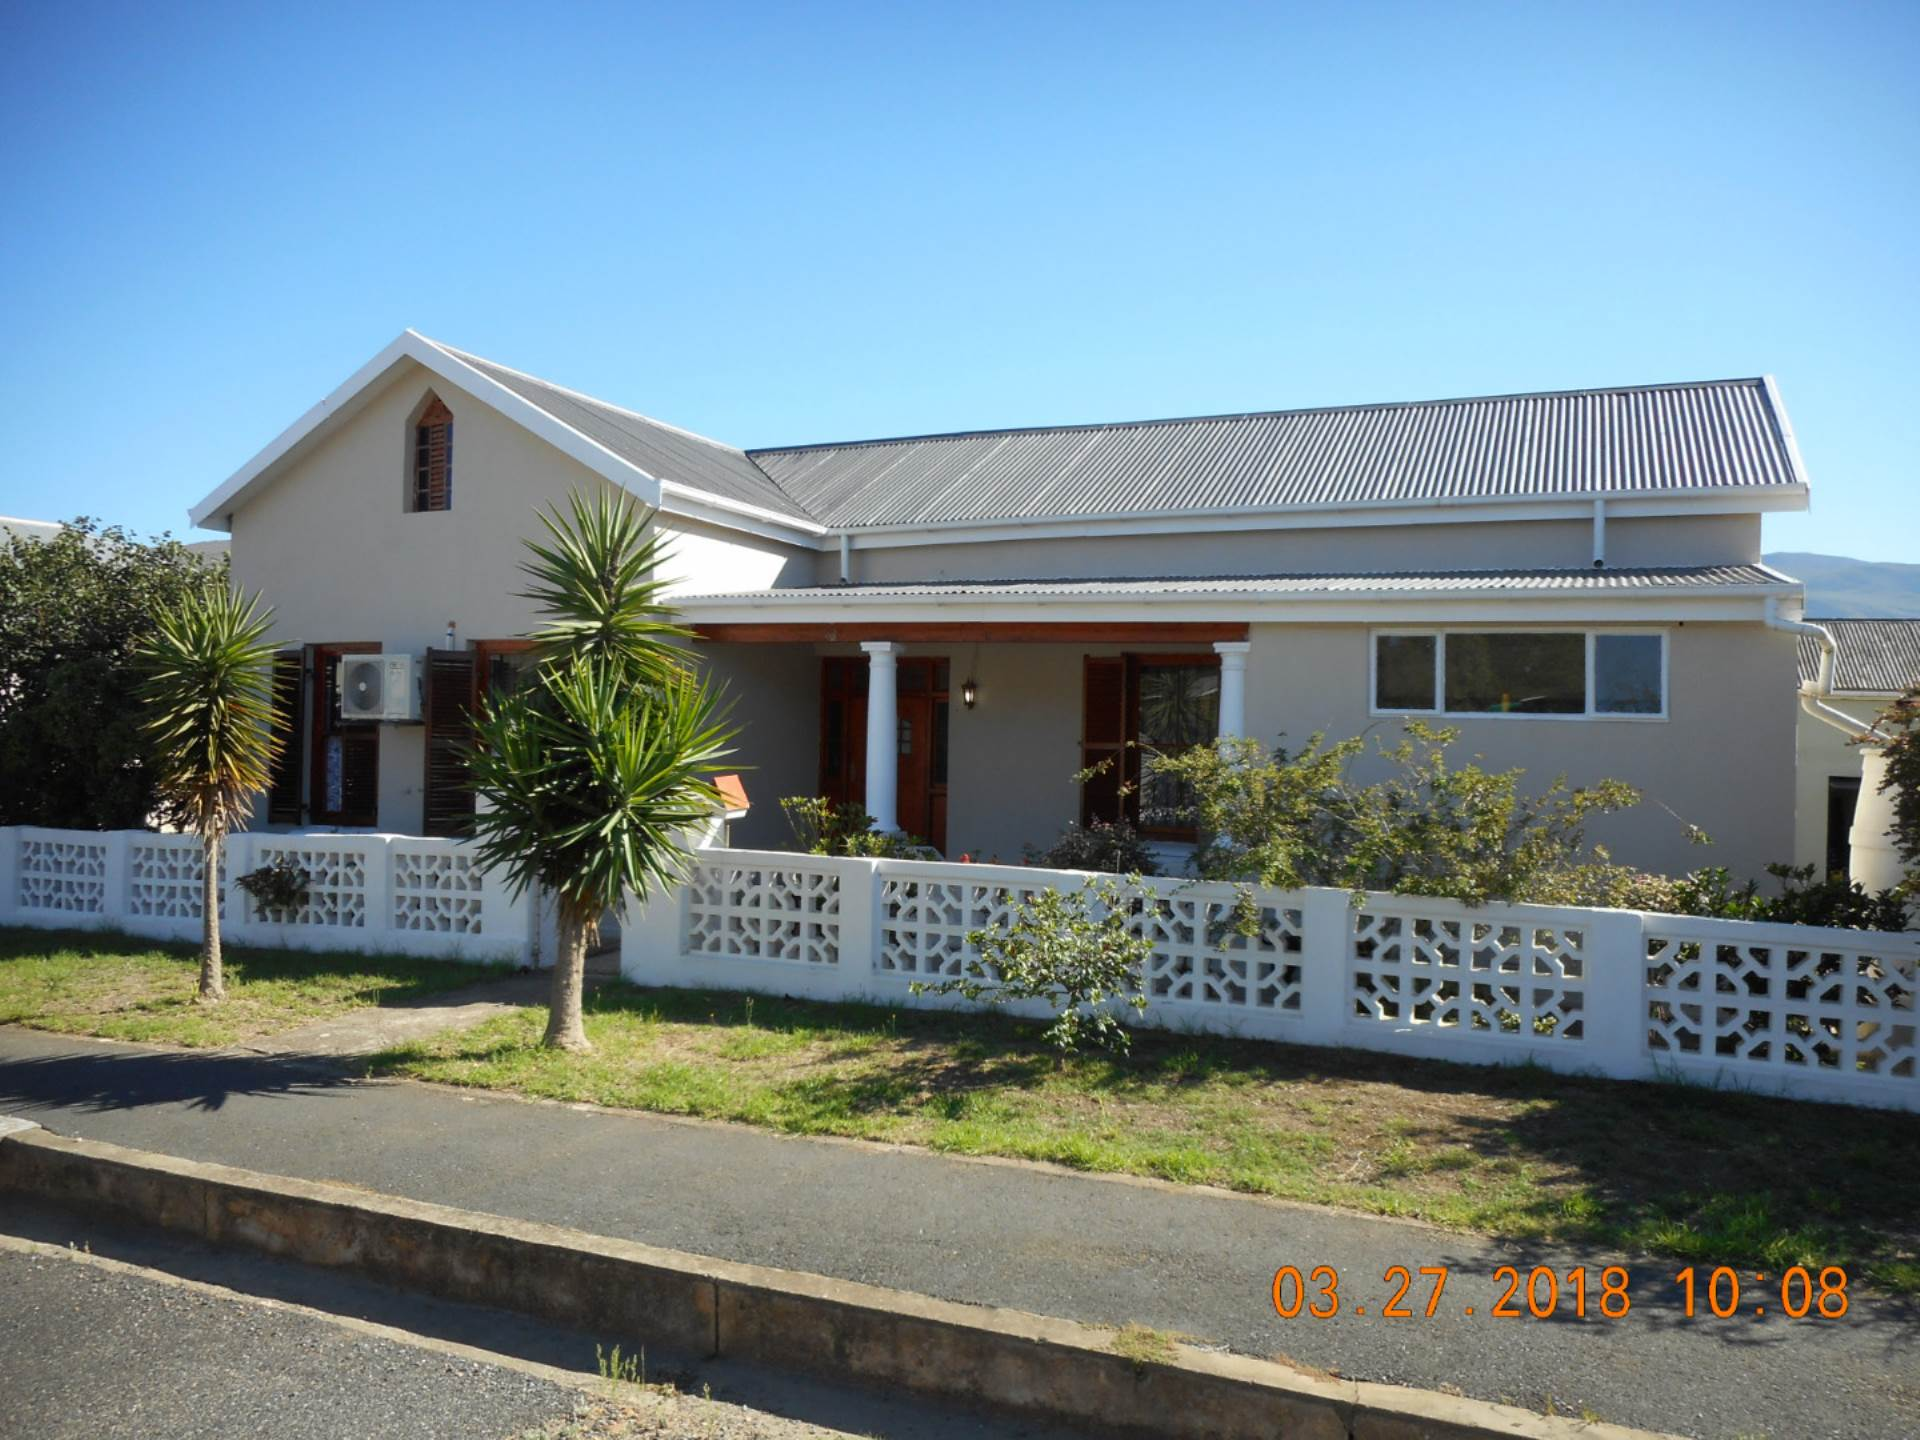 3 BedroomHouse For Sale In Riviersonderend